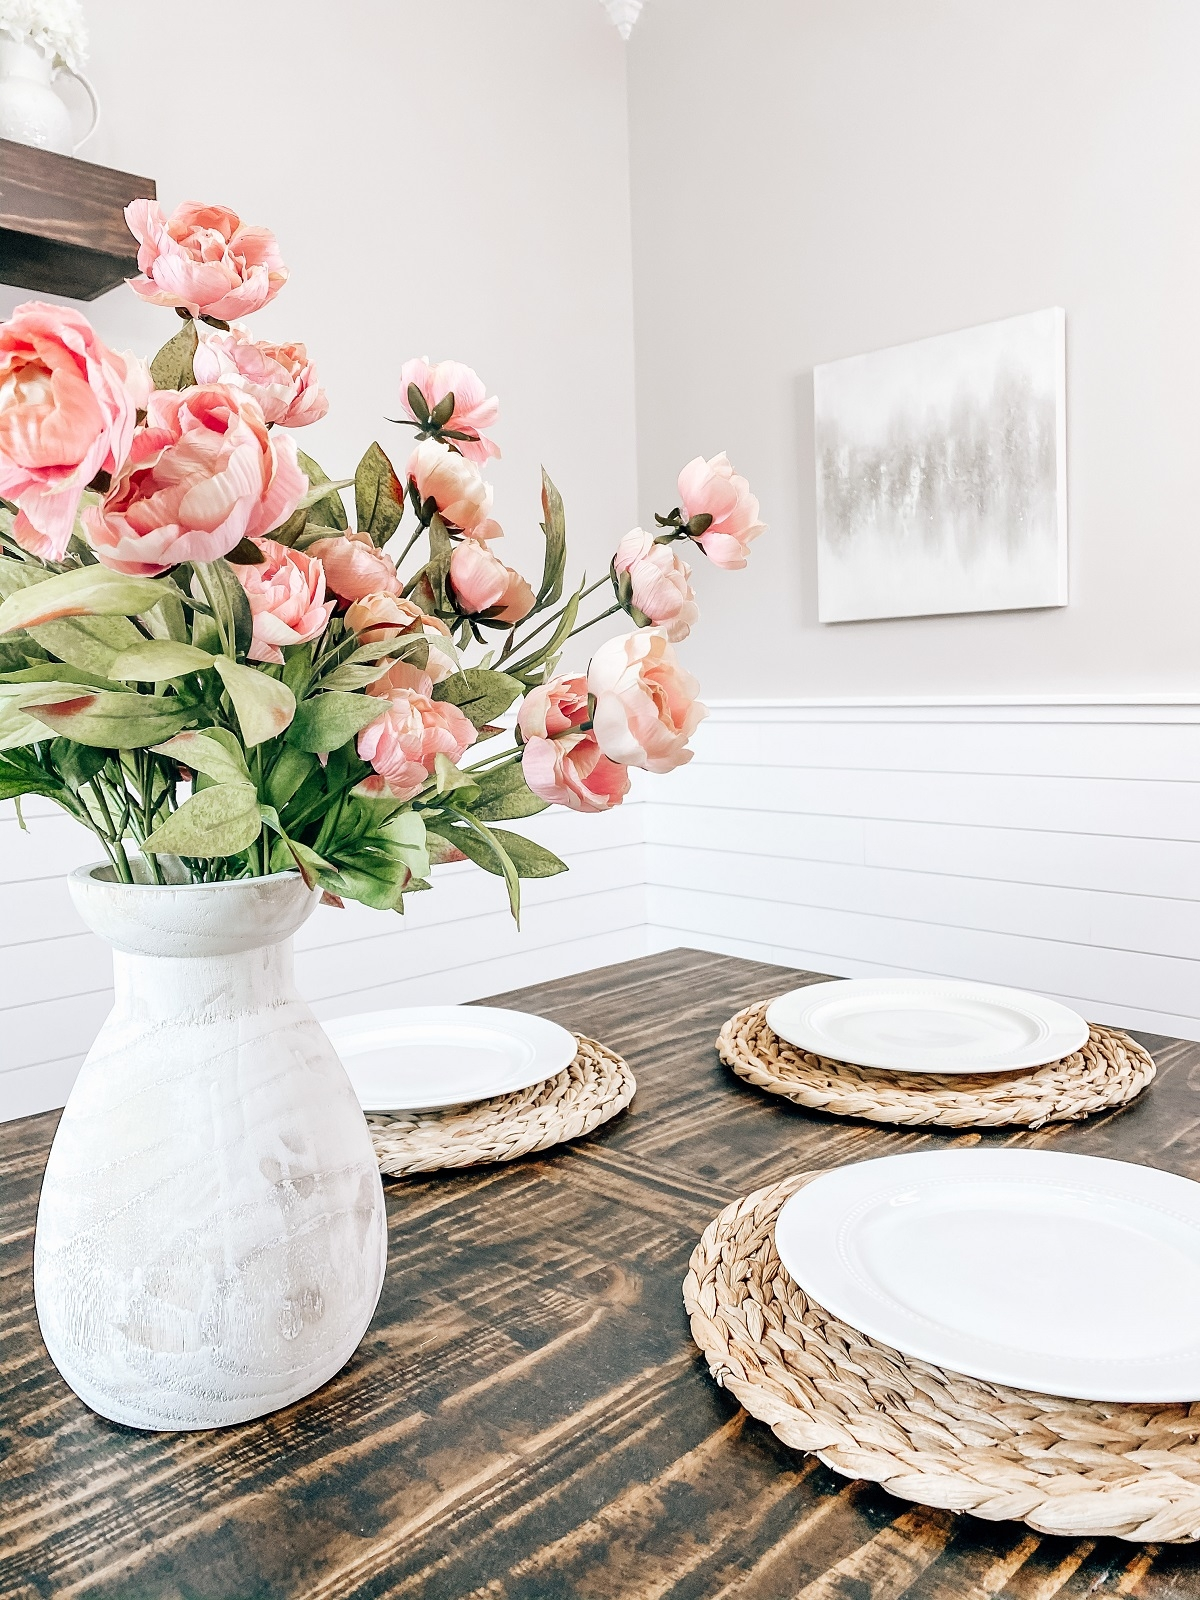 Flowers, plates and wall art for the fall